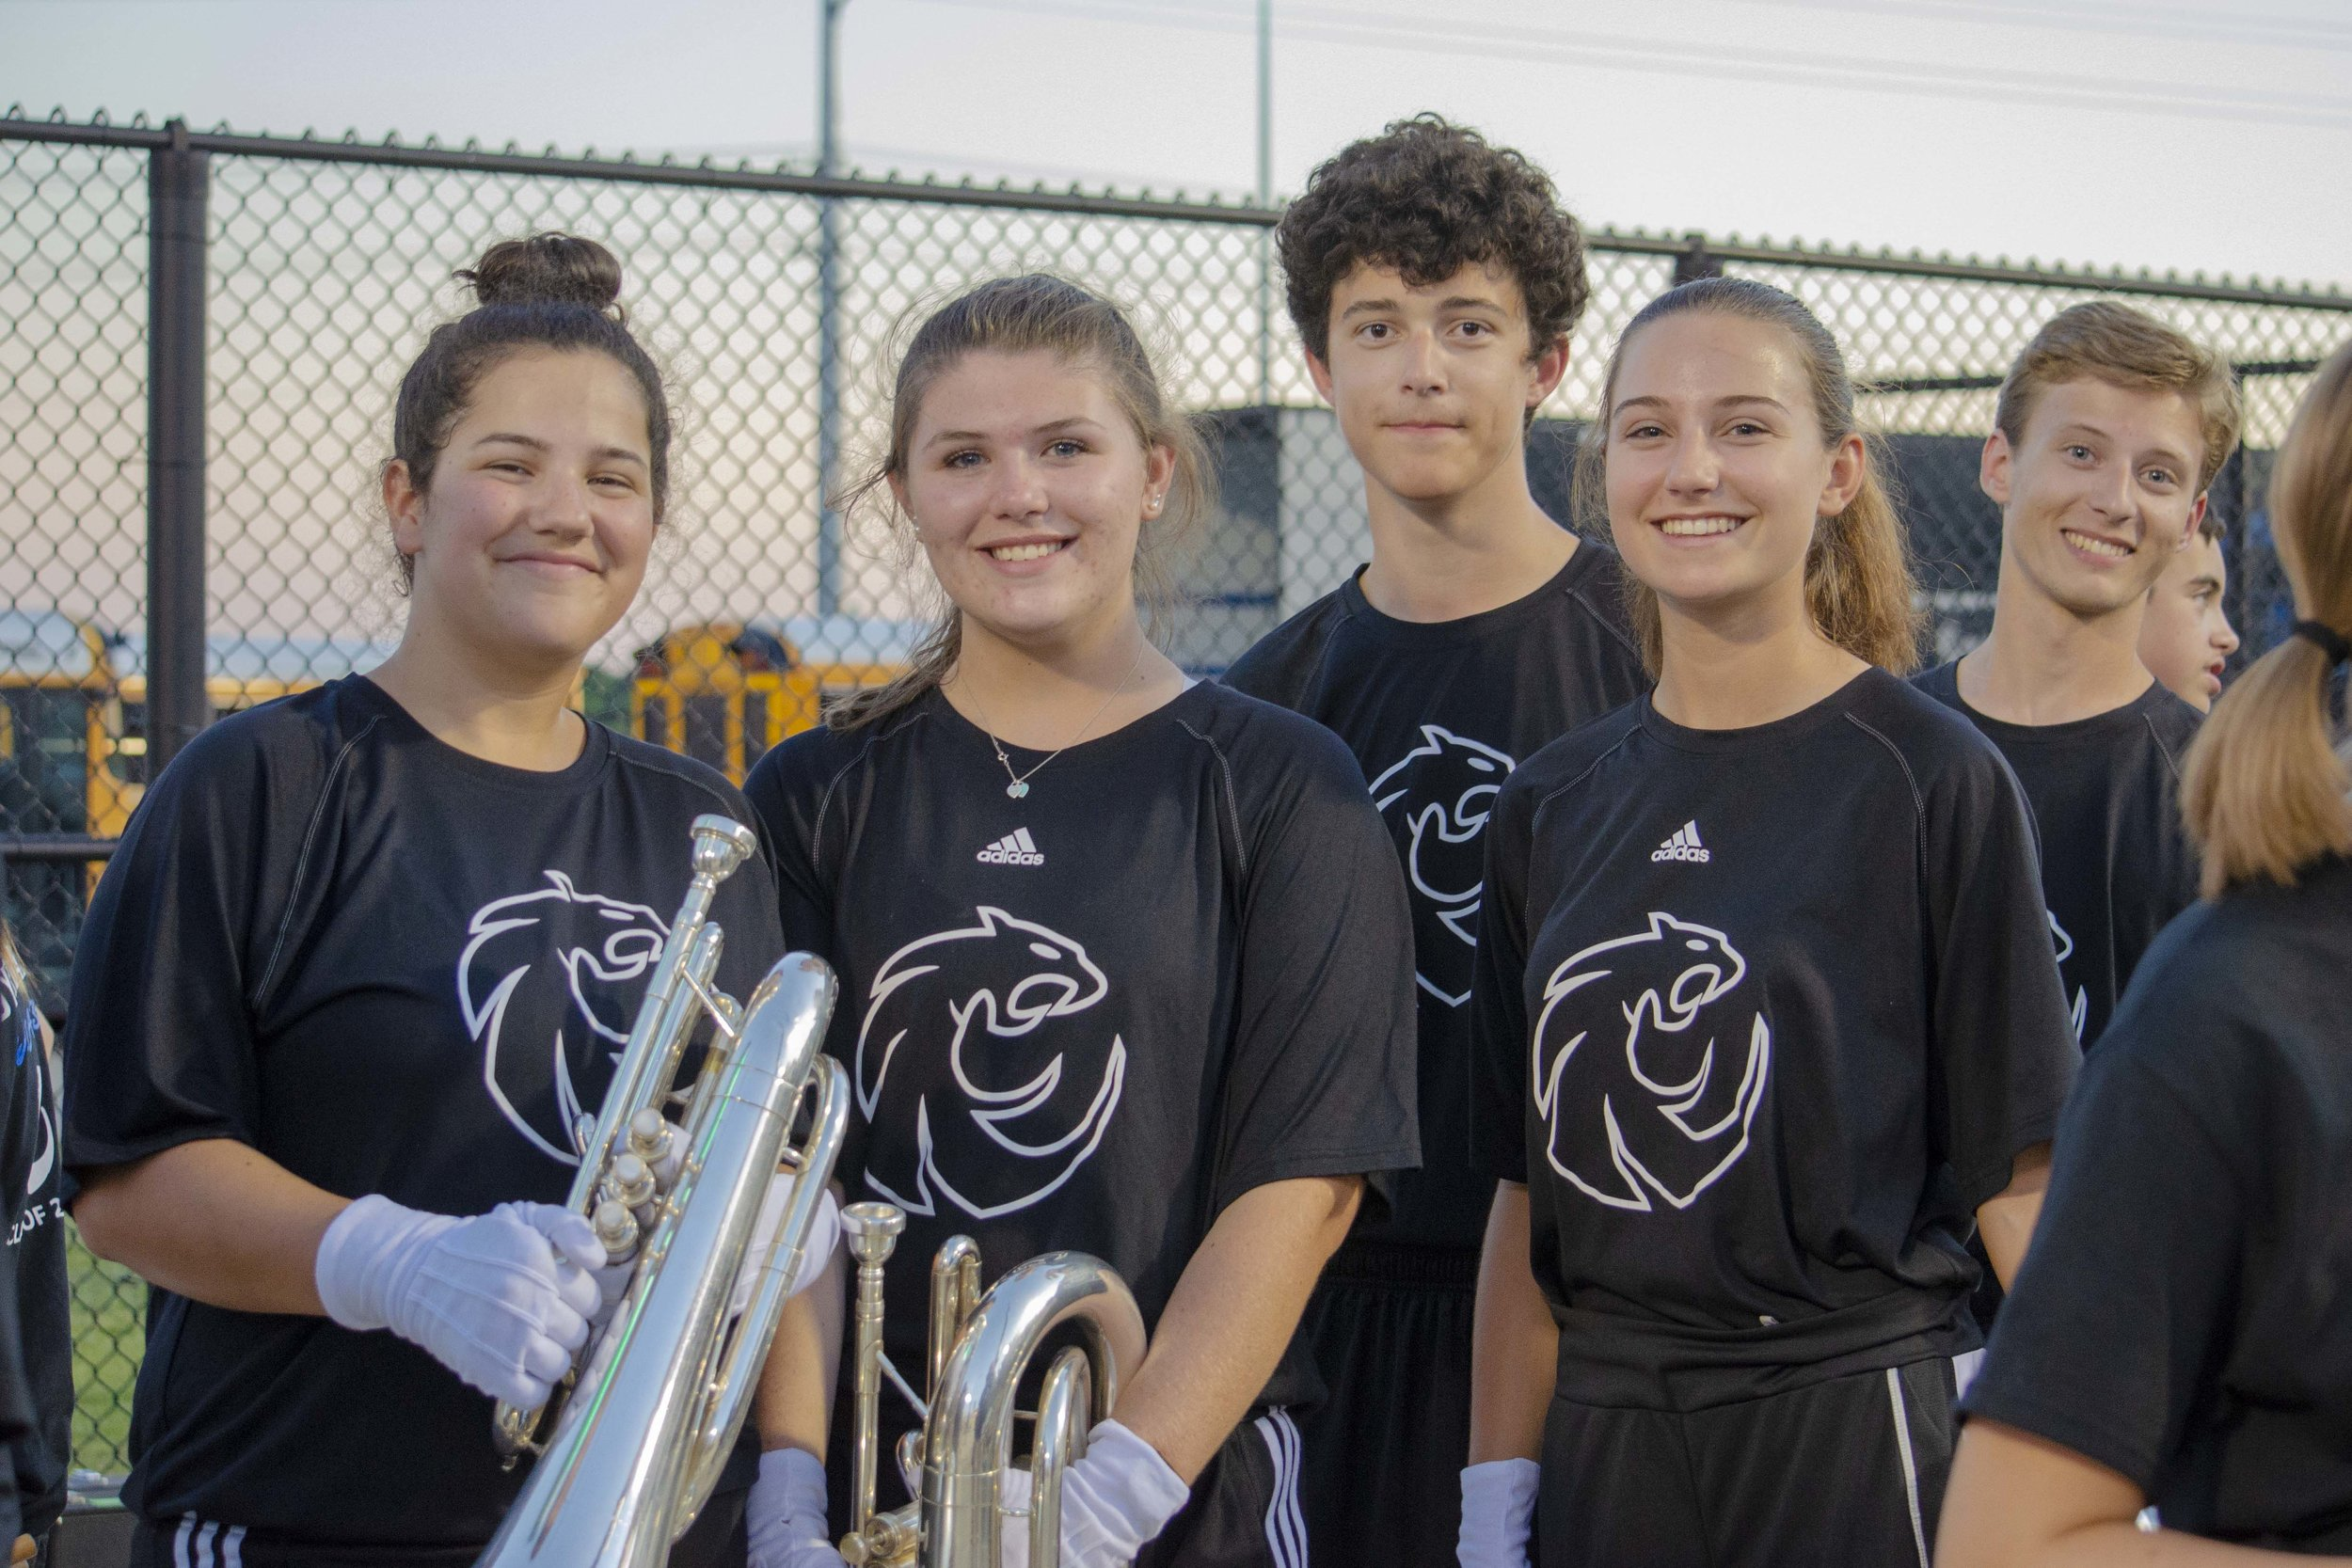 SUMMER UNIFORM SHIRT - The summer uniform shirt is a required item for all band members.  Worn throughout the year as a summer marching uniform, a layer beneath the formal uniforms and also for in-school pep rallies and events.$20.00 ea.